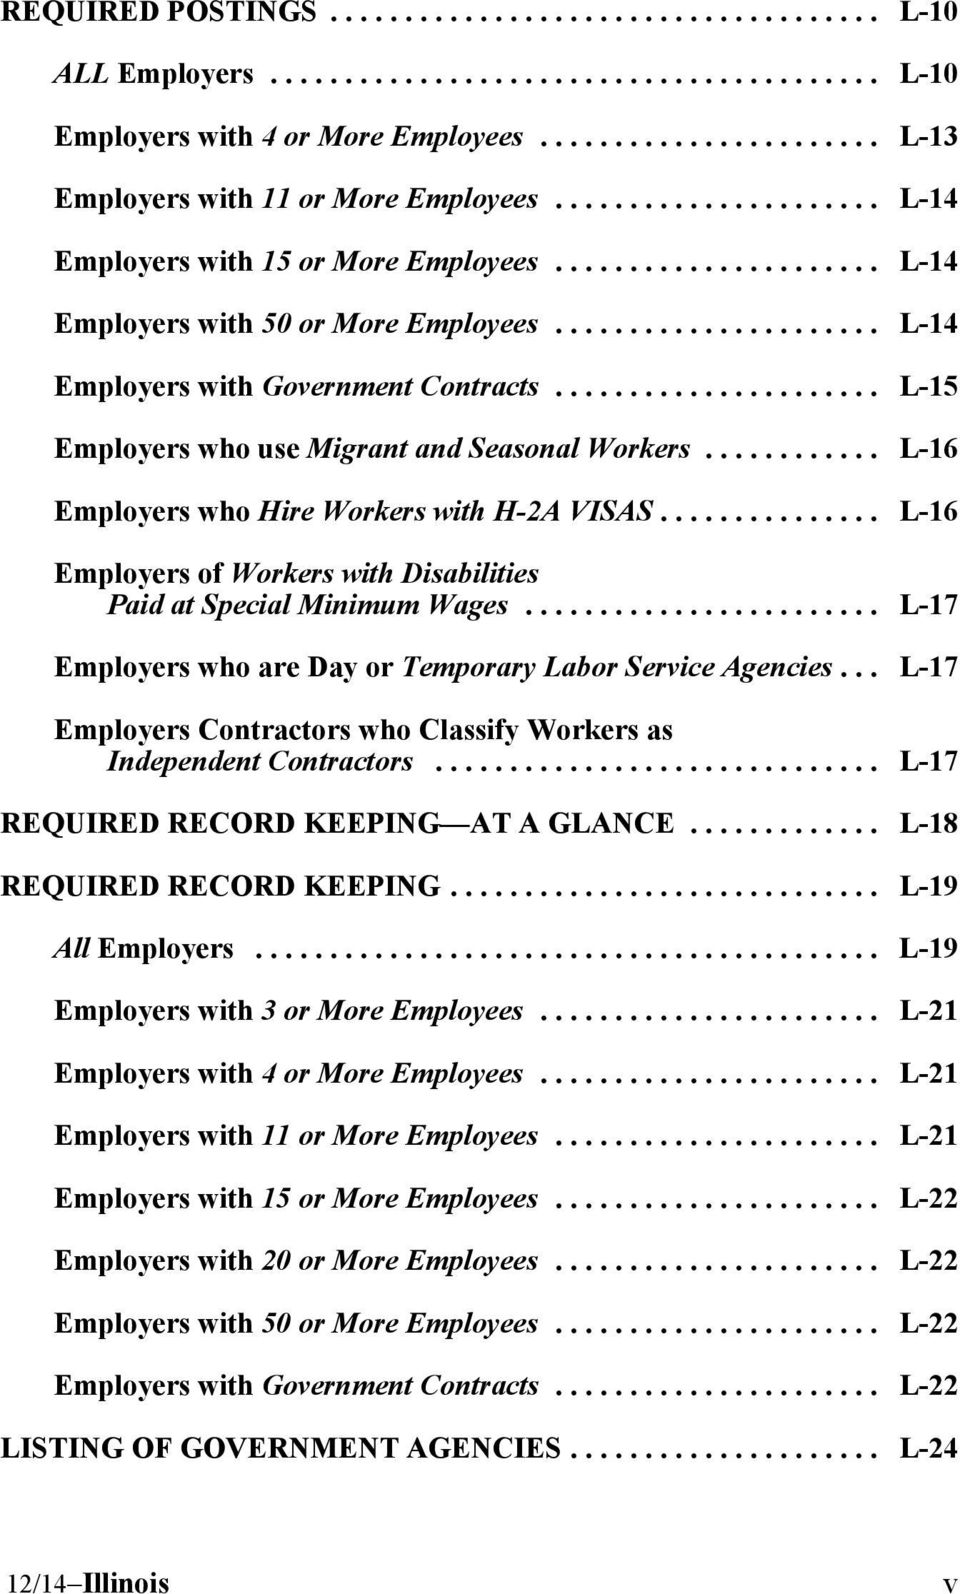 .. L-16 Employers of Workers with Disabilities Paid at Special Minimum Wages... L-17 Employers who are Day or Temporary Labor Service Agencies.